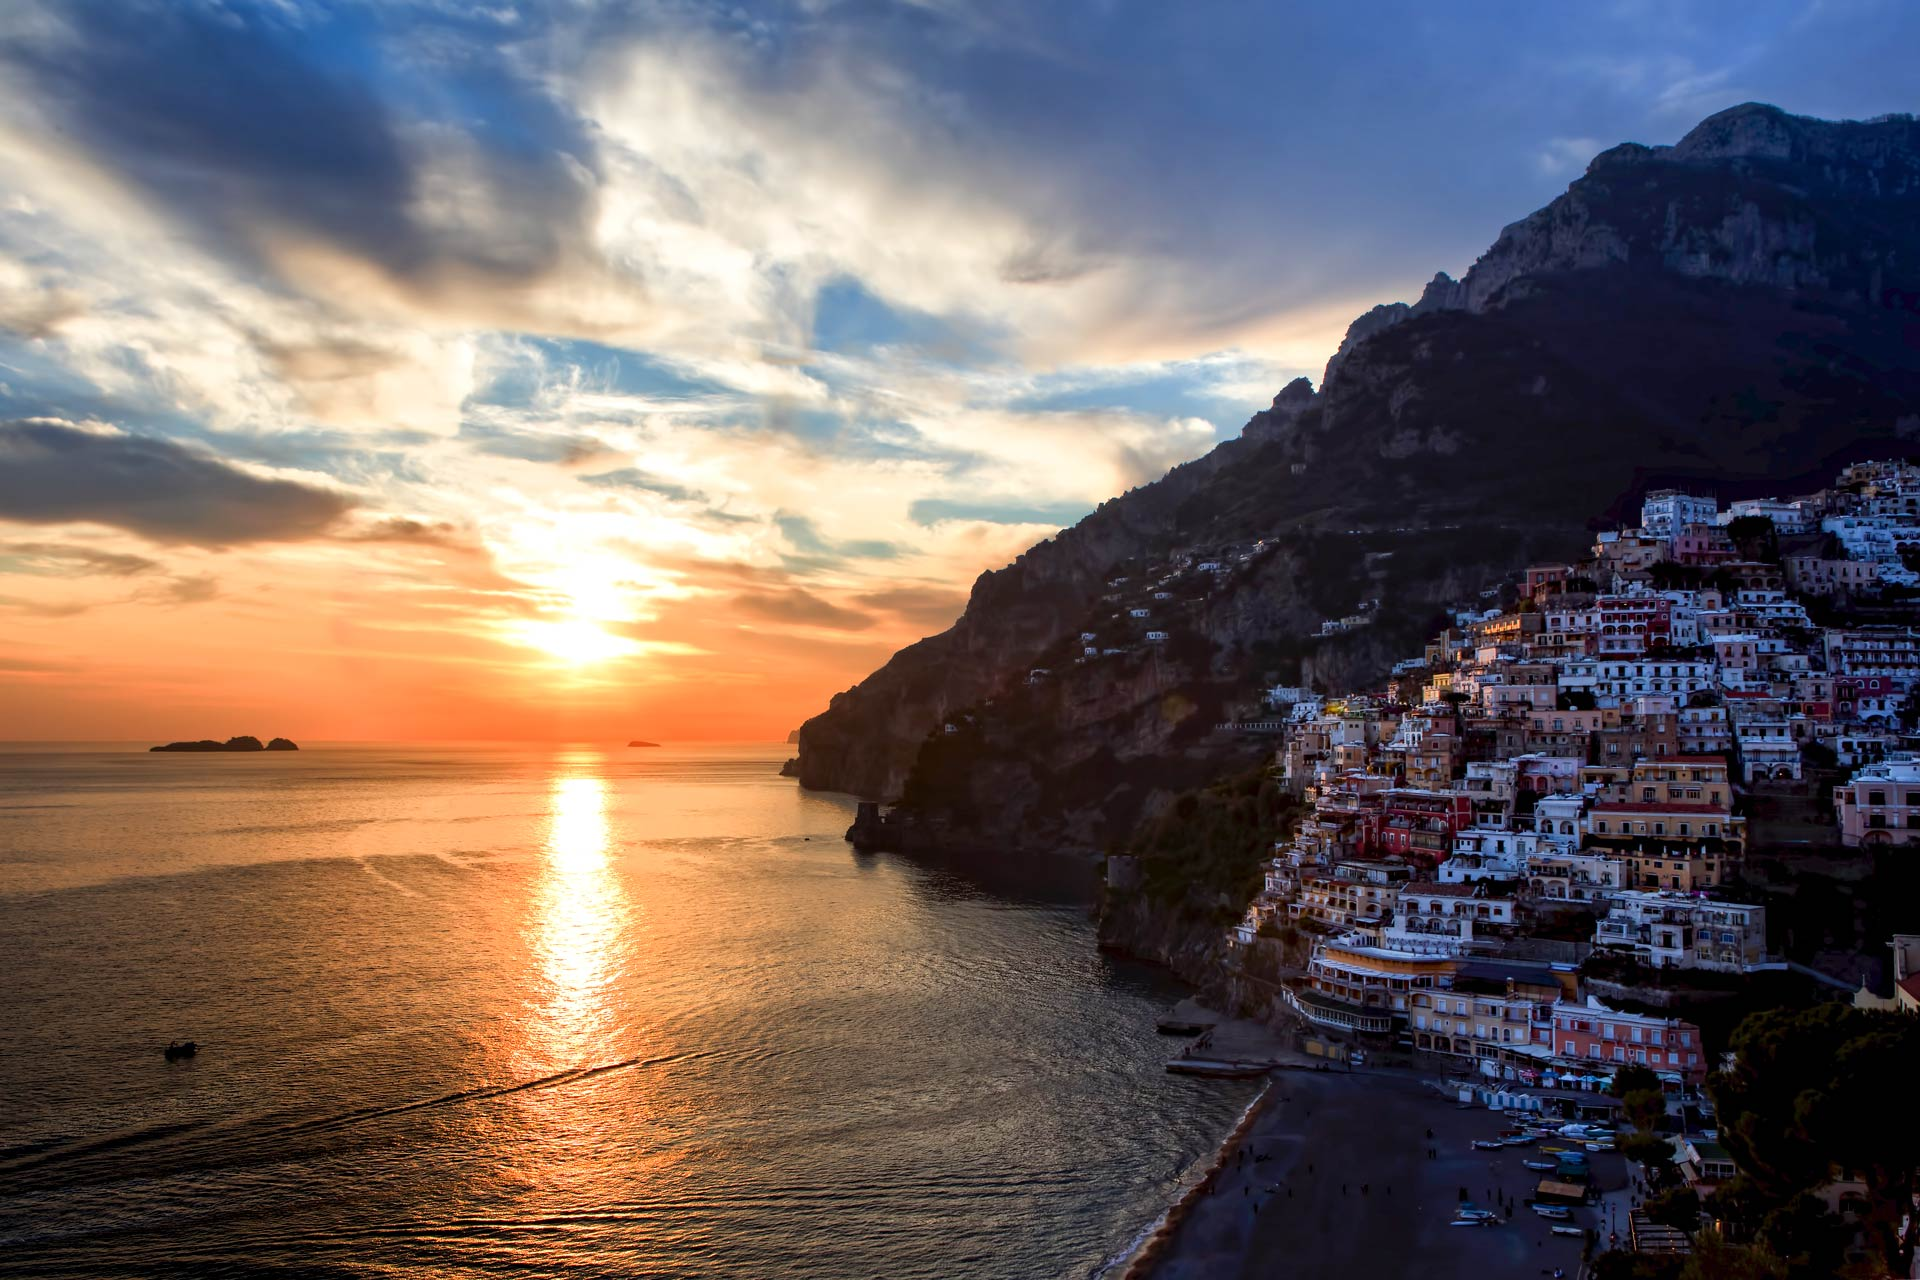 Sunset in Positano